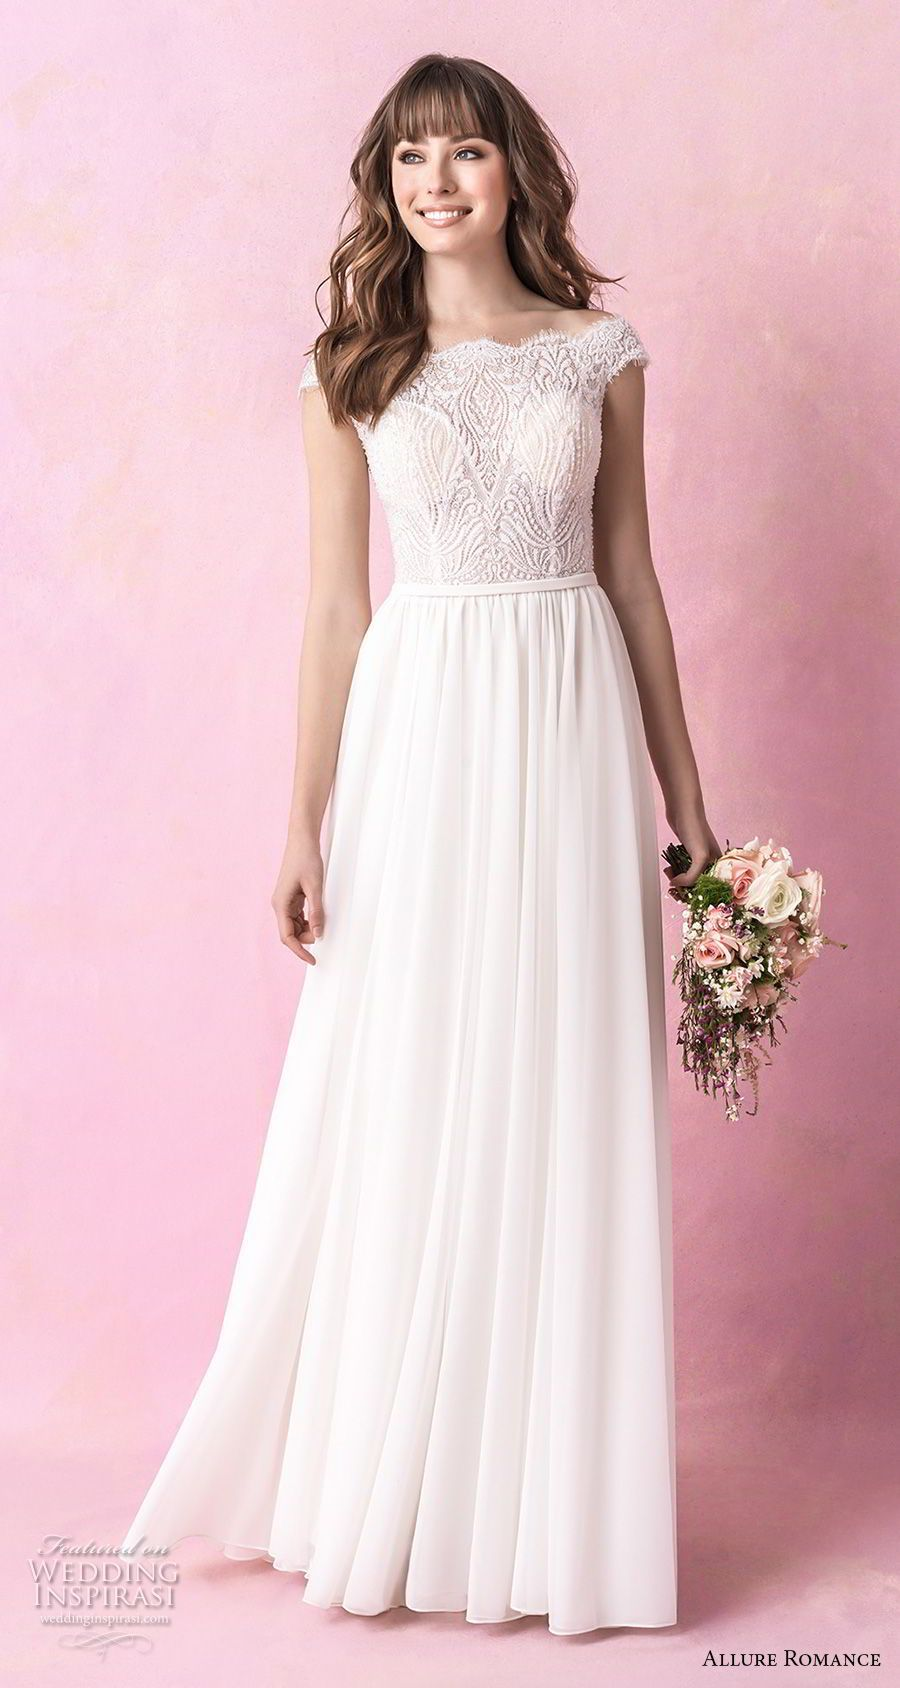 Allure romance fall wedding dresses wedding pinterest